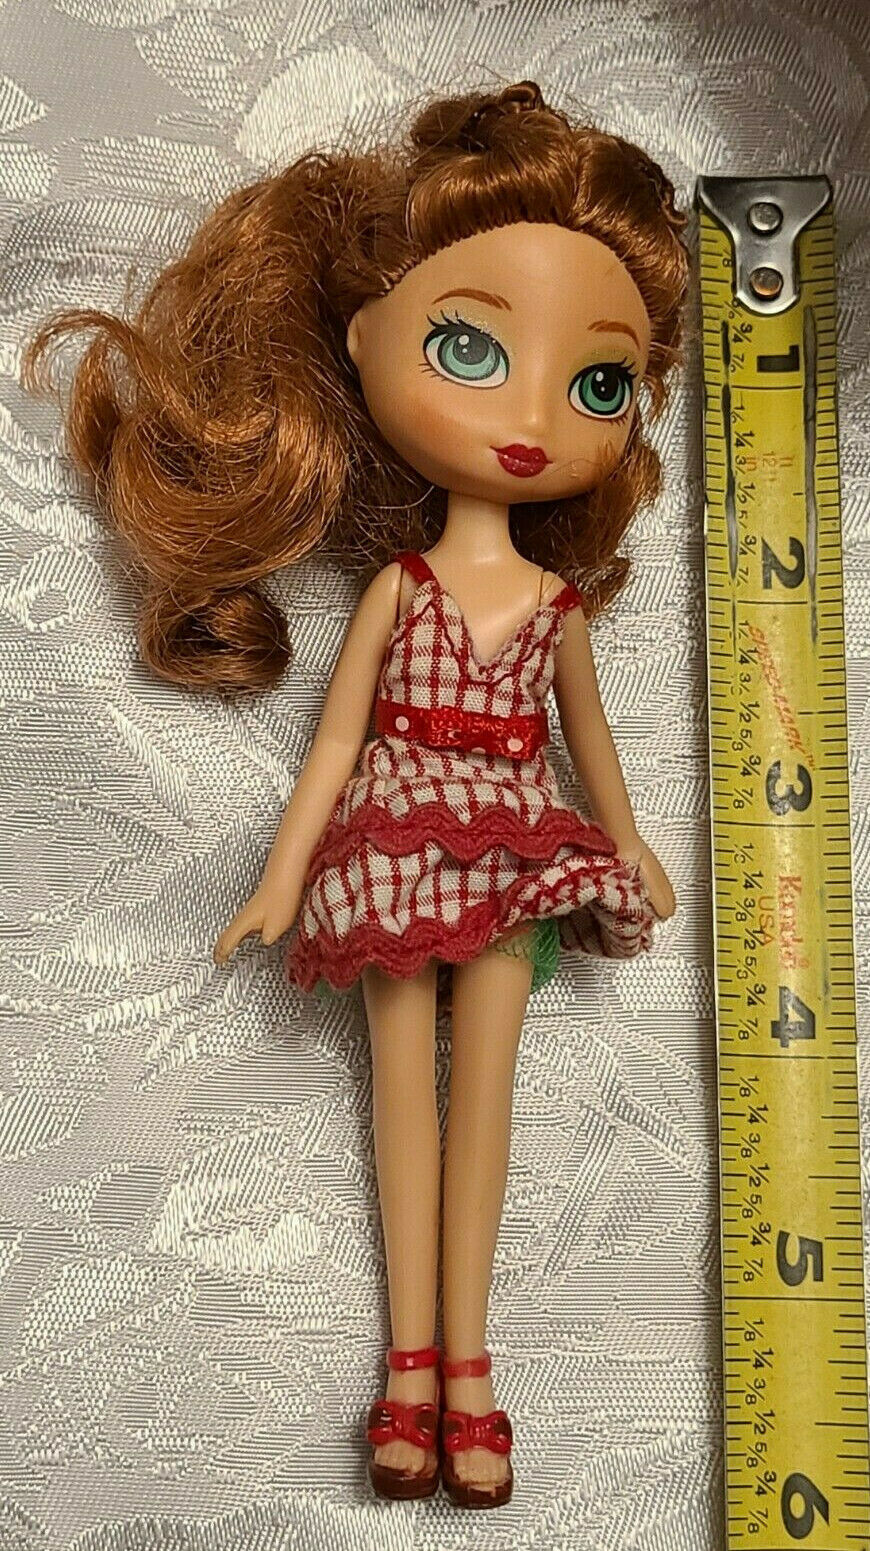 Bratz  Doll - Clothes Included as shown in Photo                    (BR8)